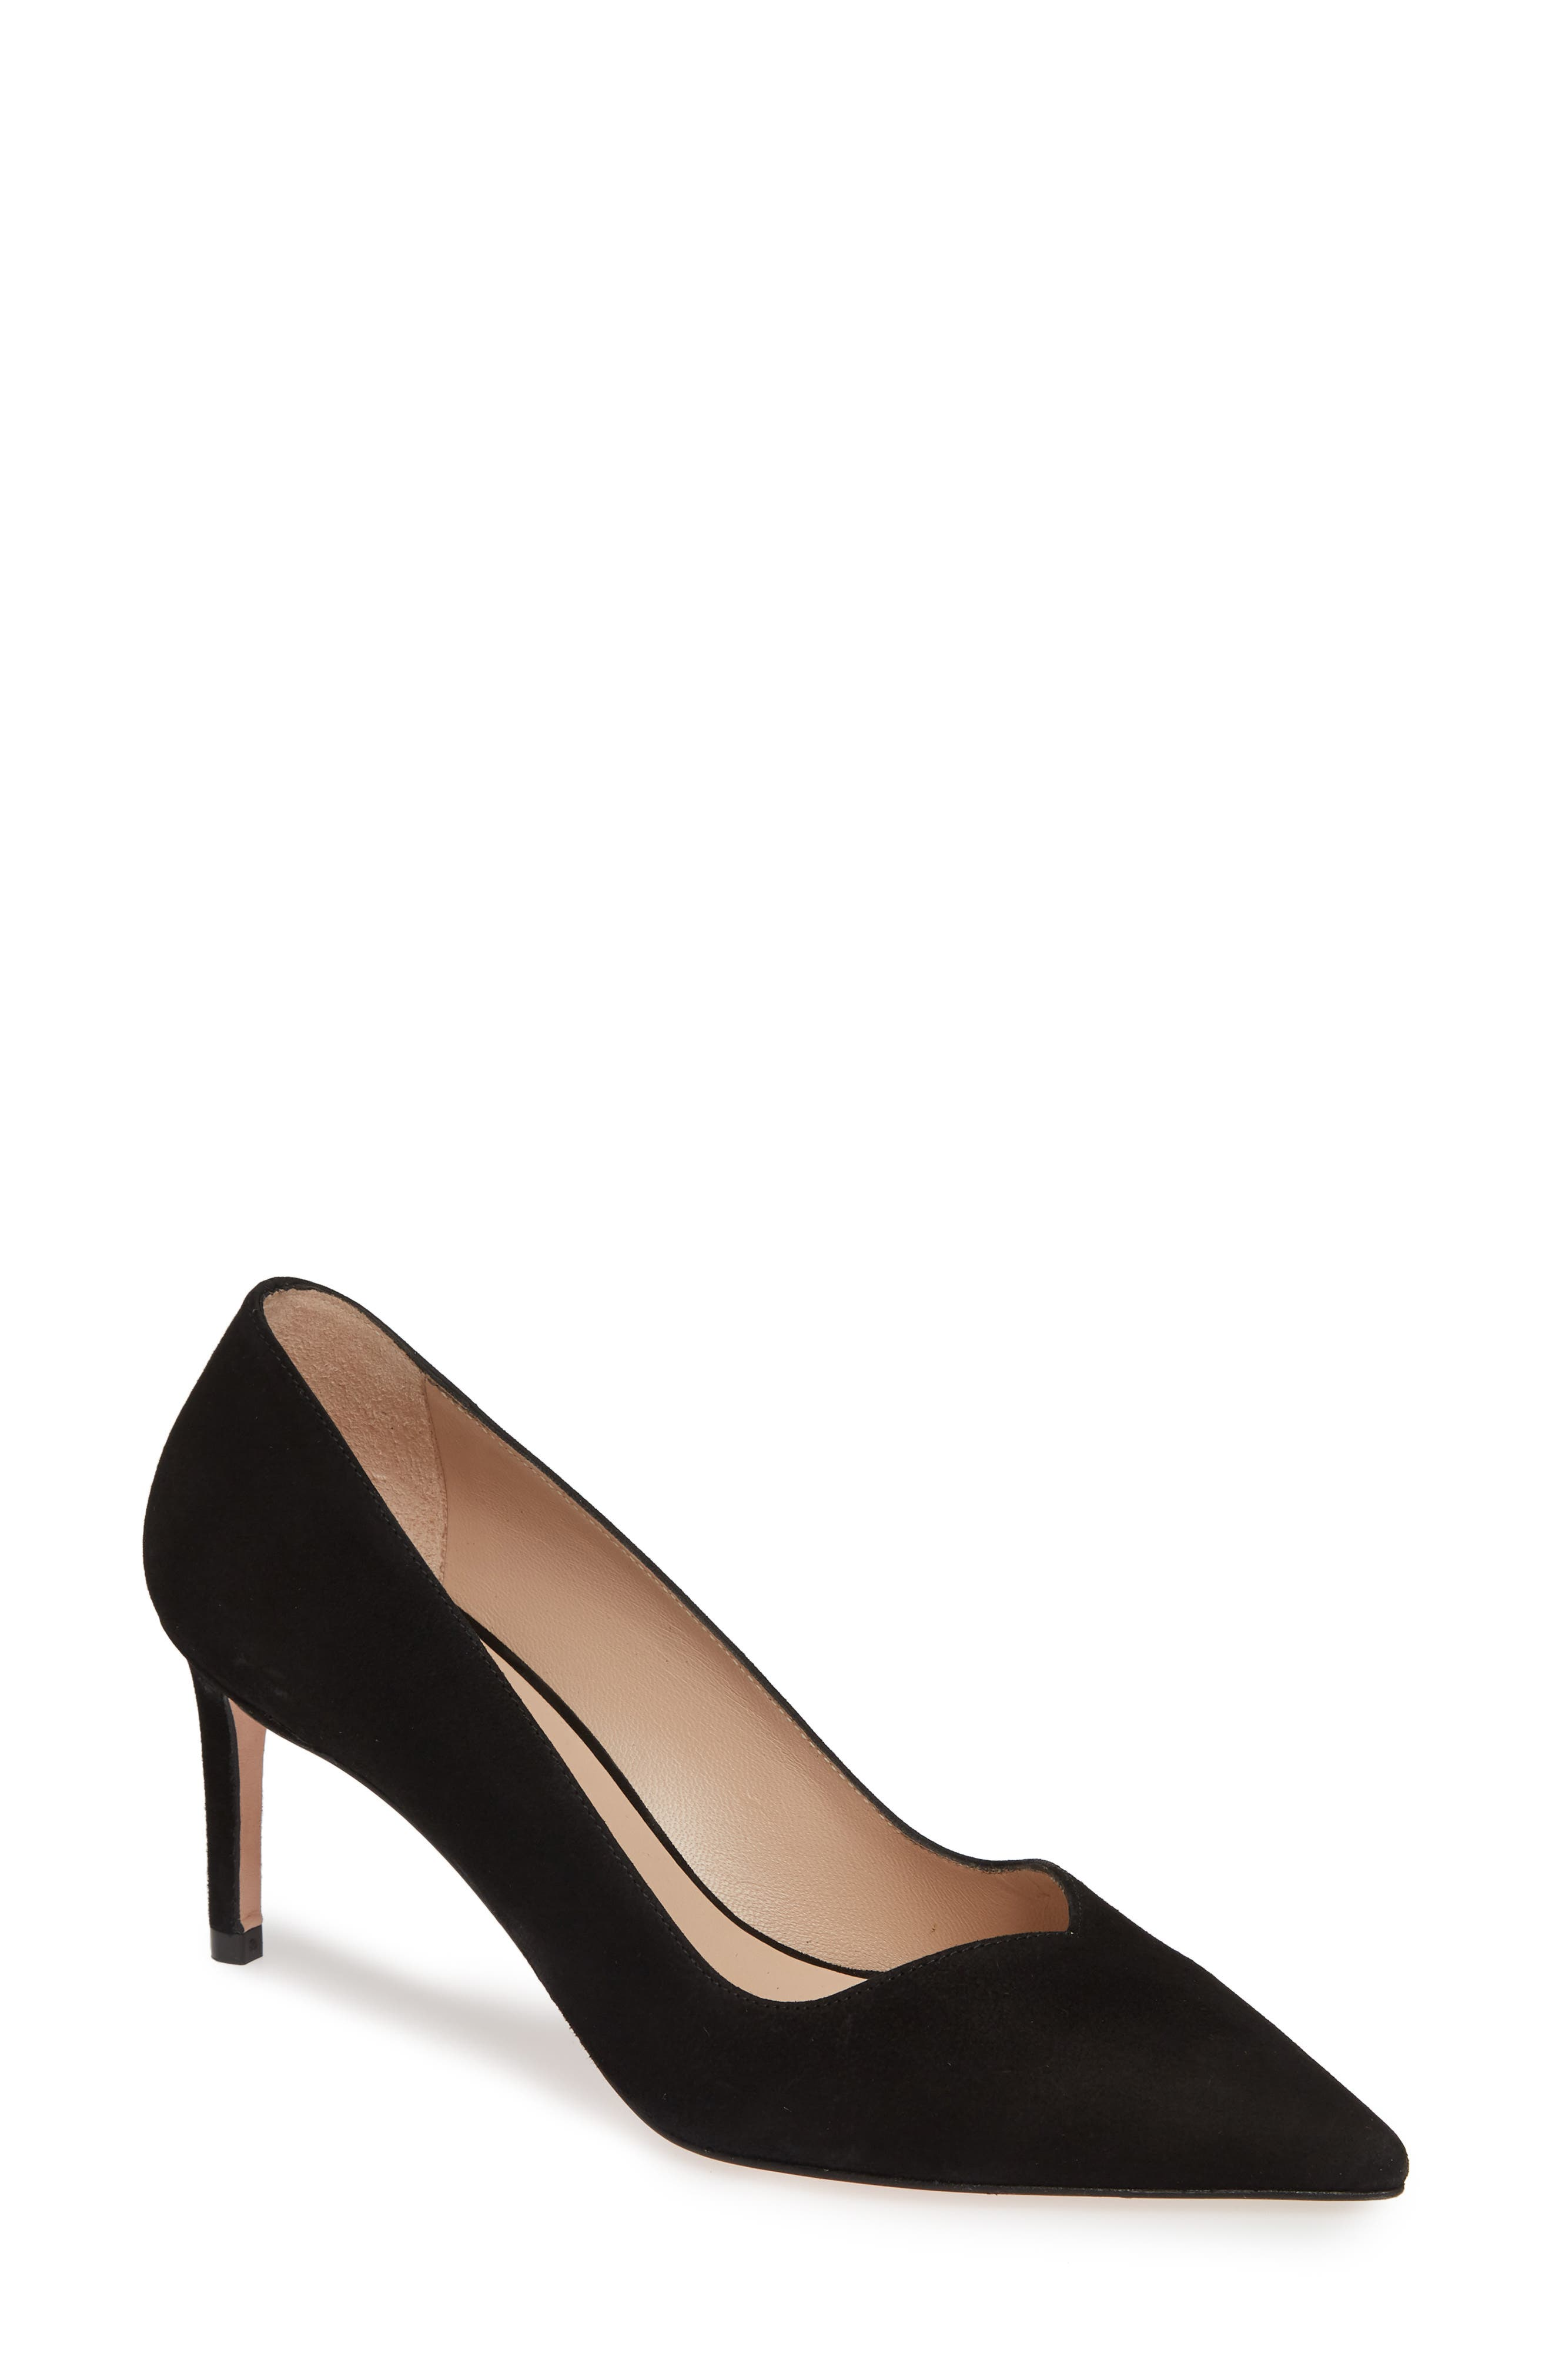 Stuart Weitzman Anny Pointy Toe Pump- Black